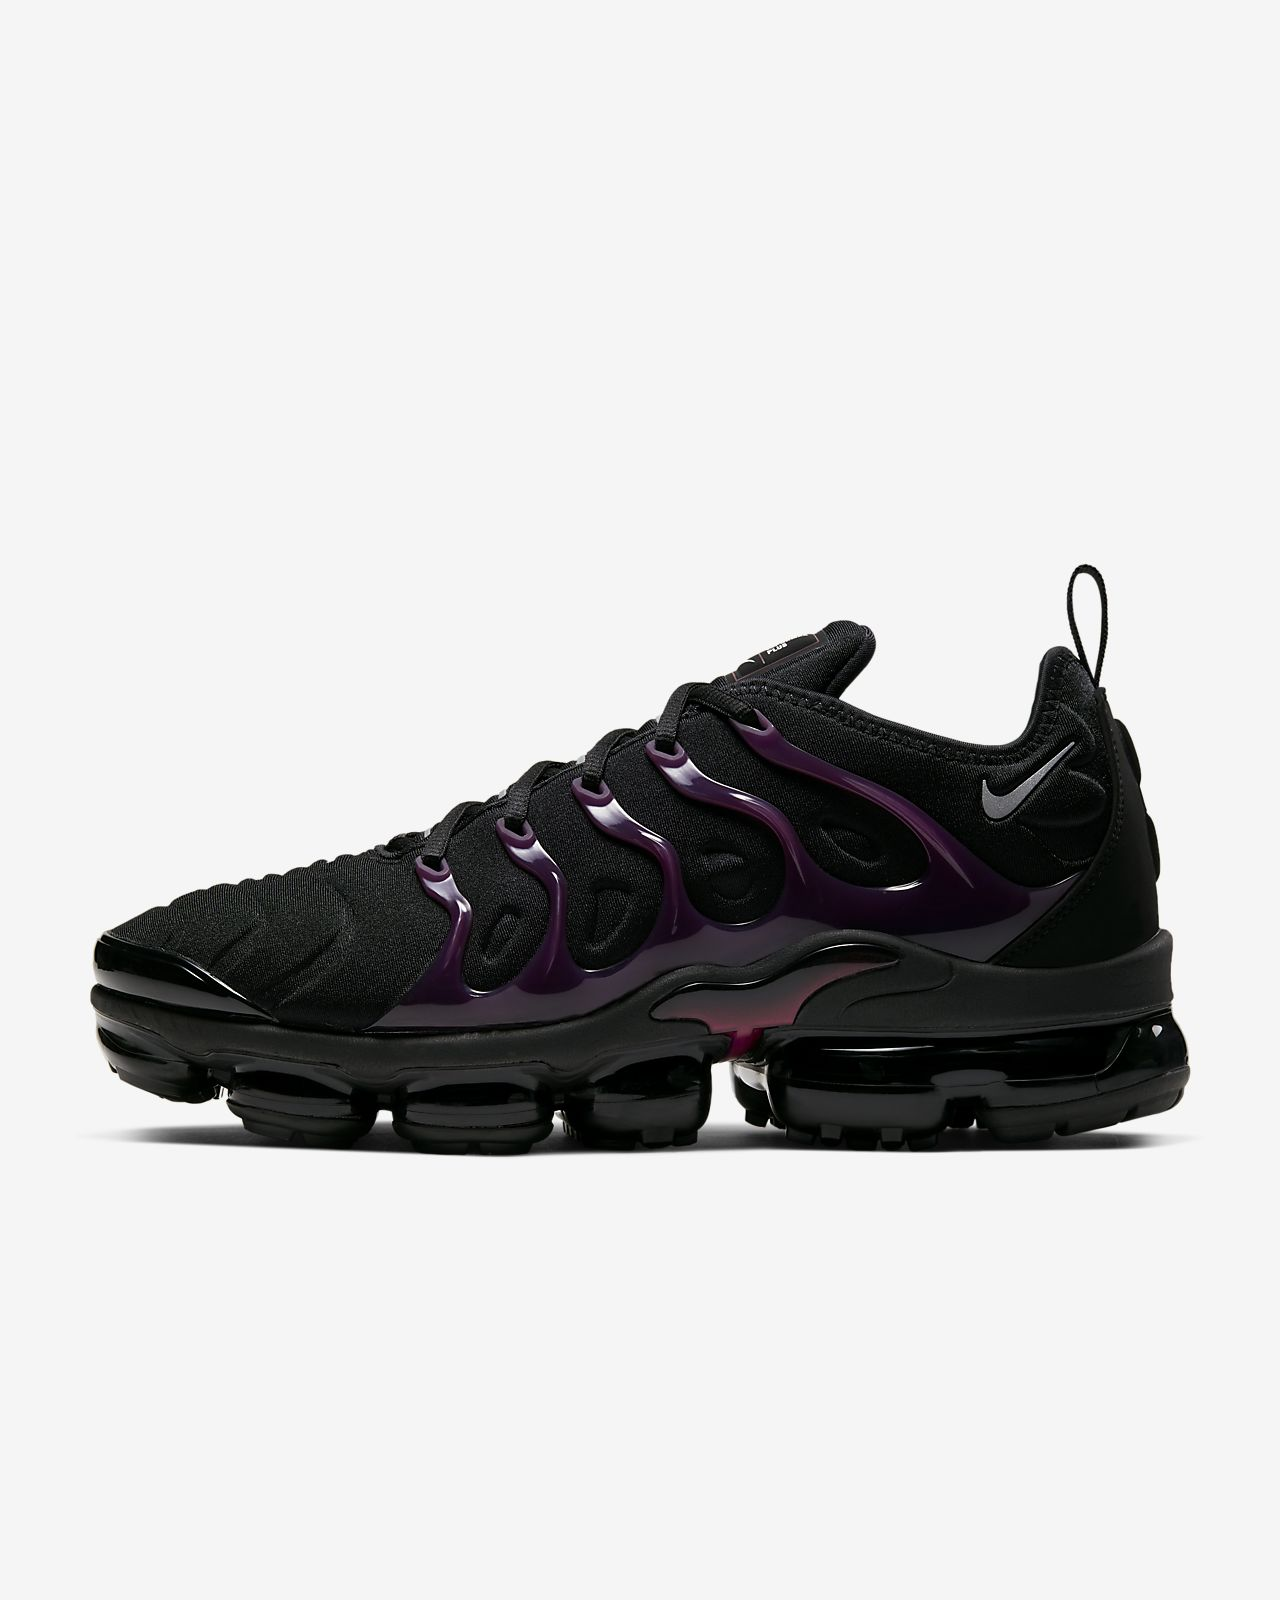 wholesale outlet shop new release Nike Air VaporMax Plus Men's Shoe